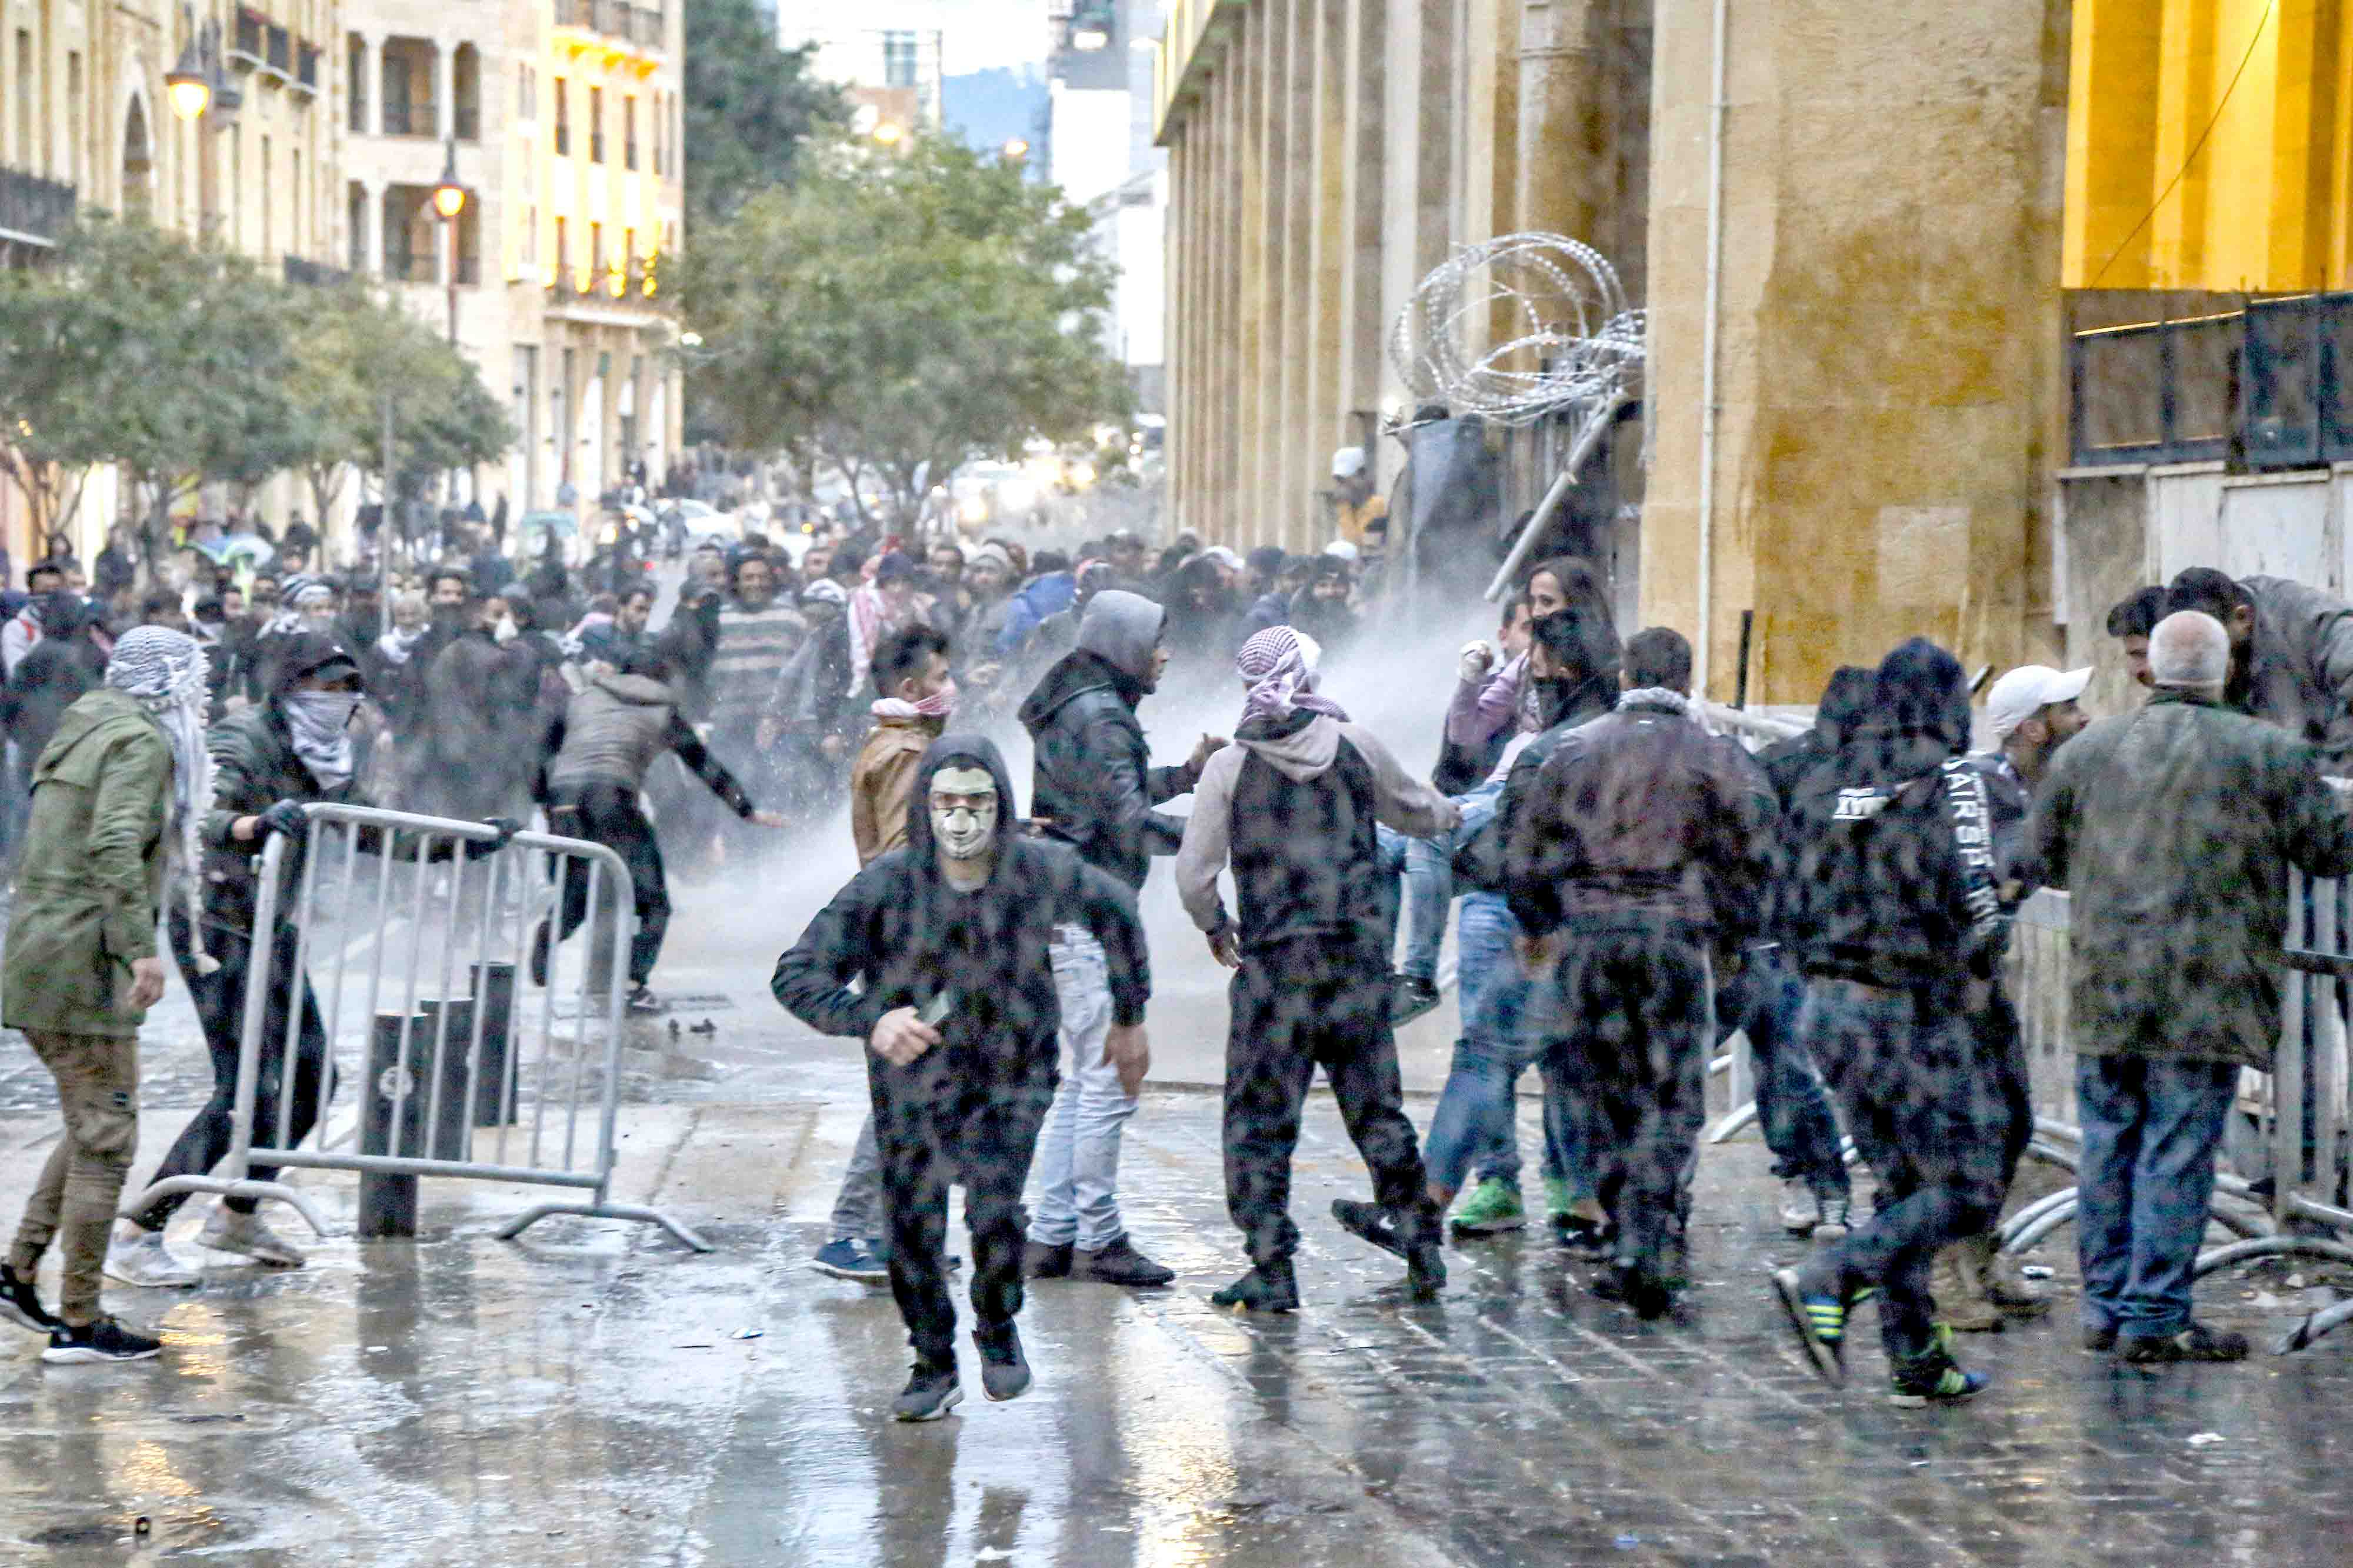 Anti-government protesters clash with riot police during a demonstration against the new government near the parliament building in Beirut, January 22. (DPA)